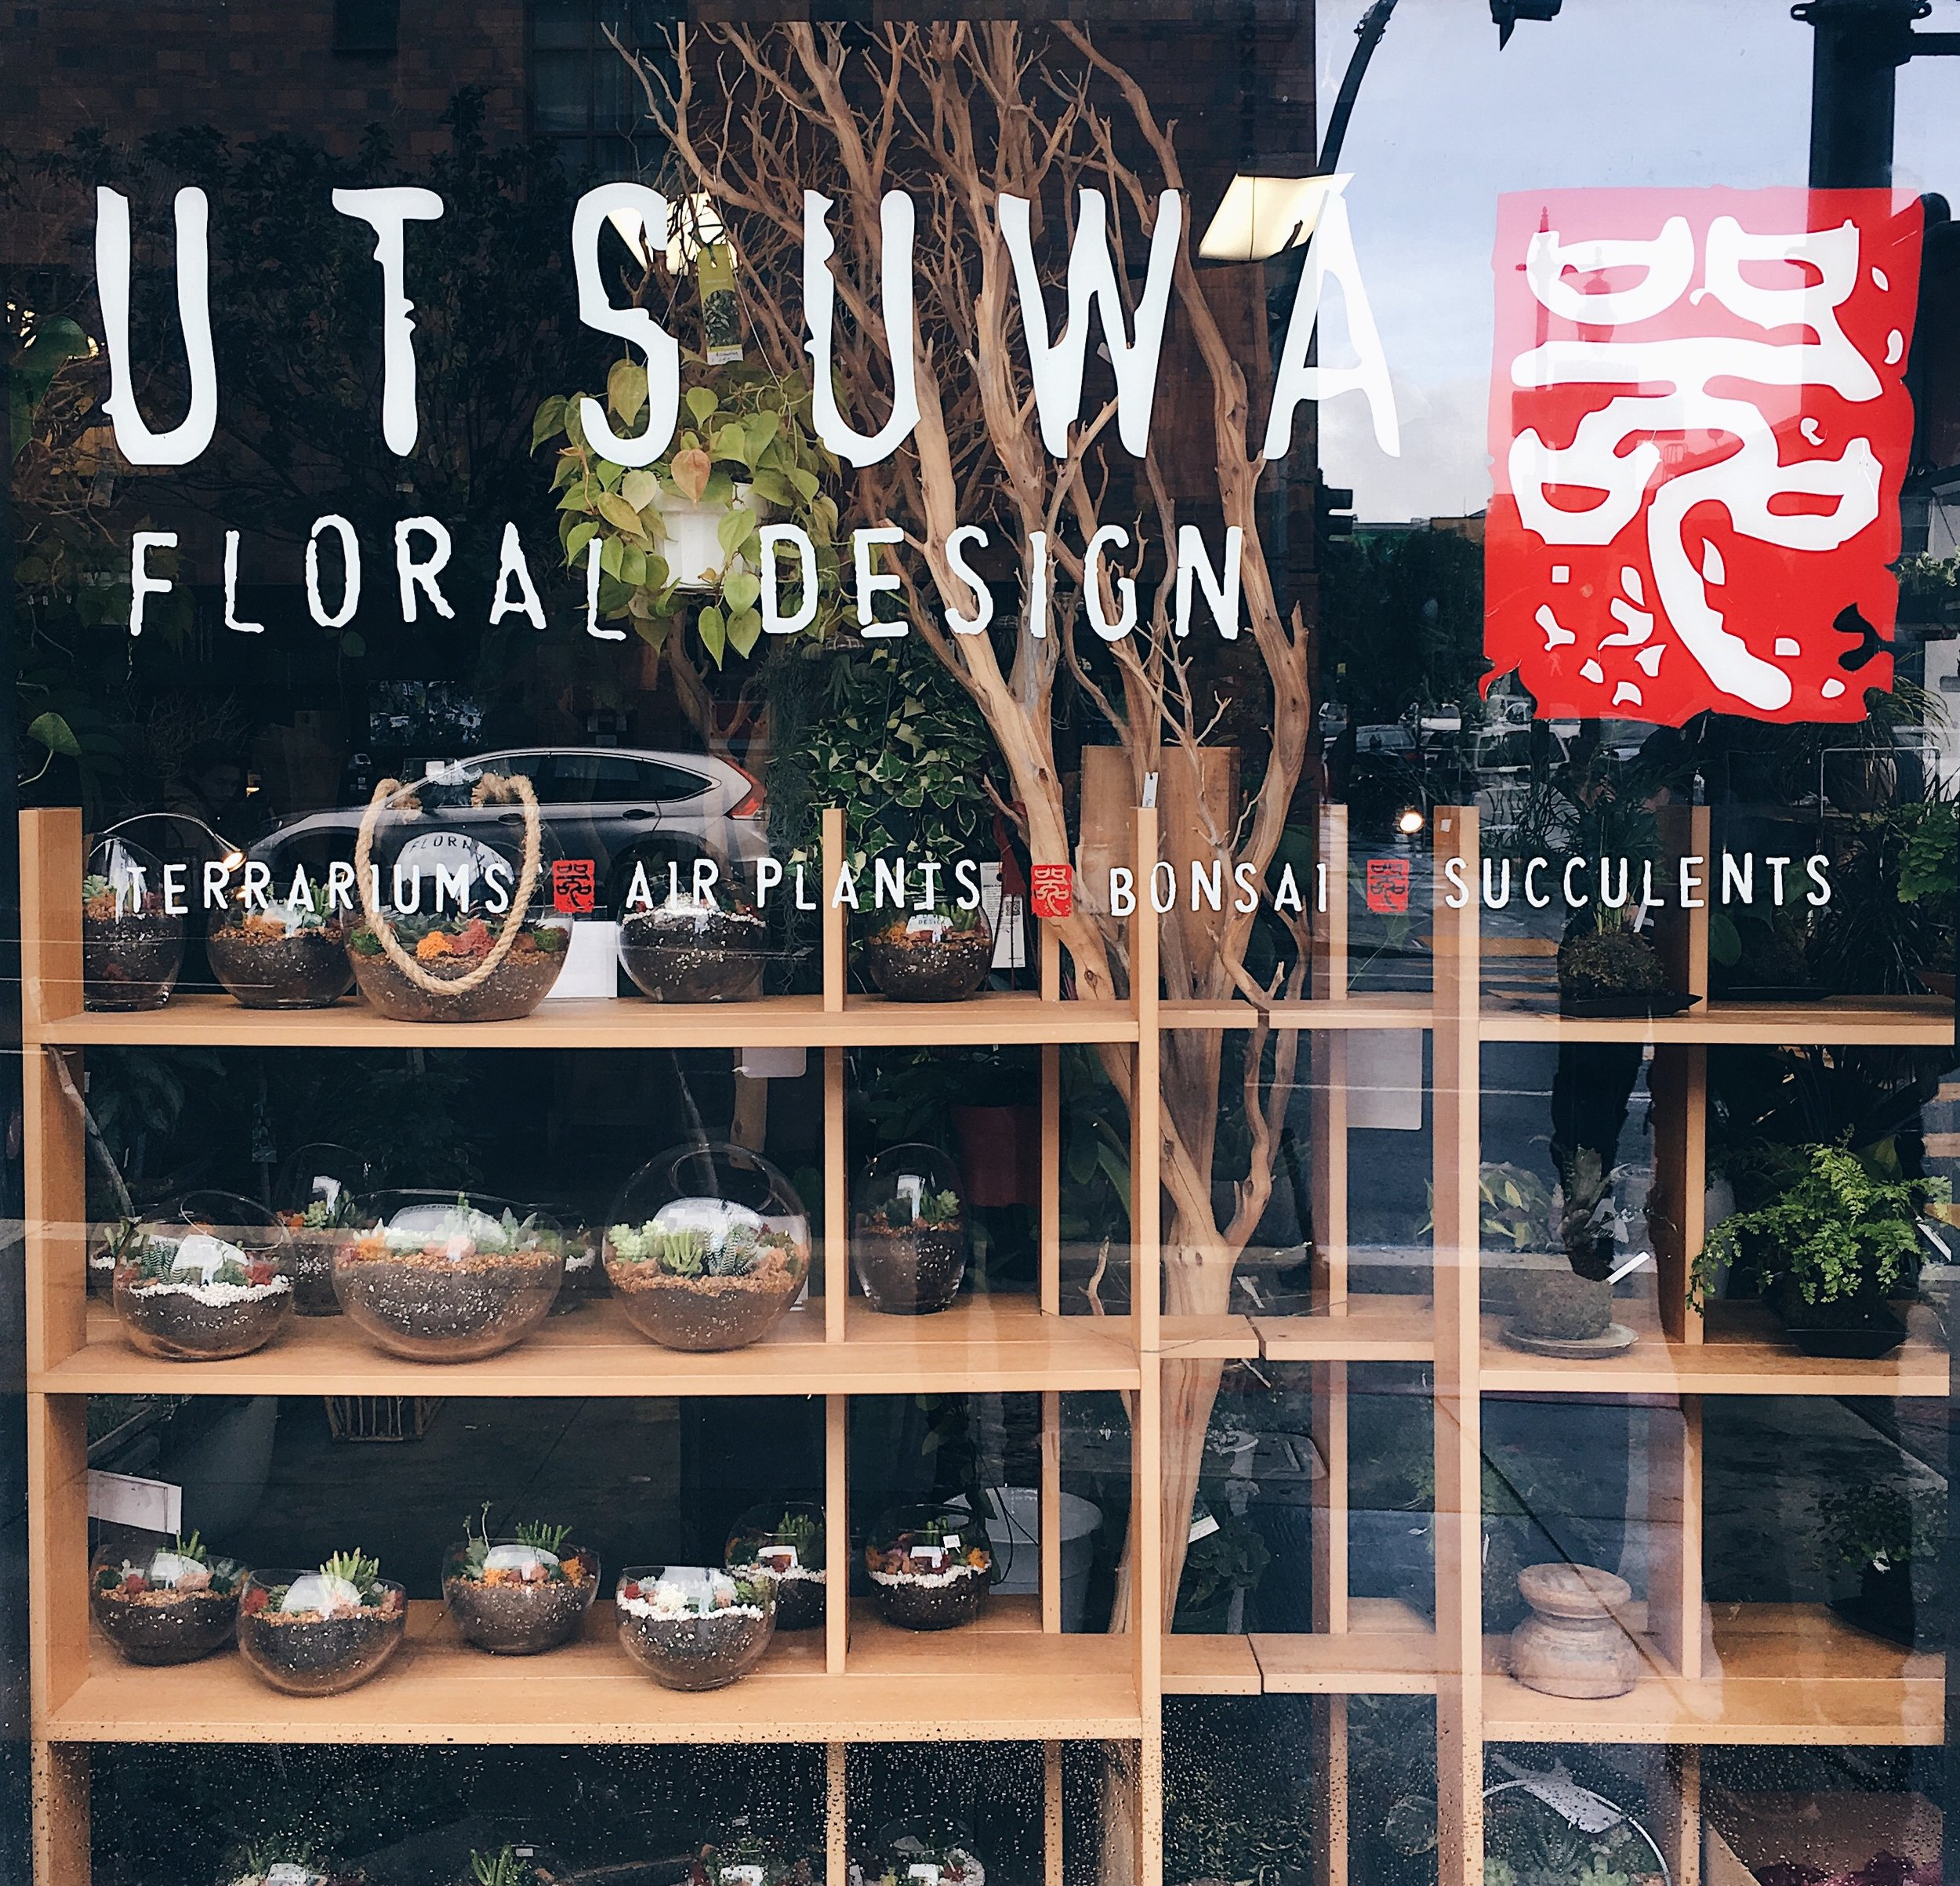 UTSUWA Floral design shop in San Francisco, California. Succulents and wooden display fixtures.